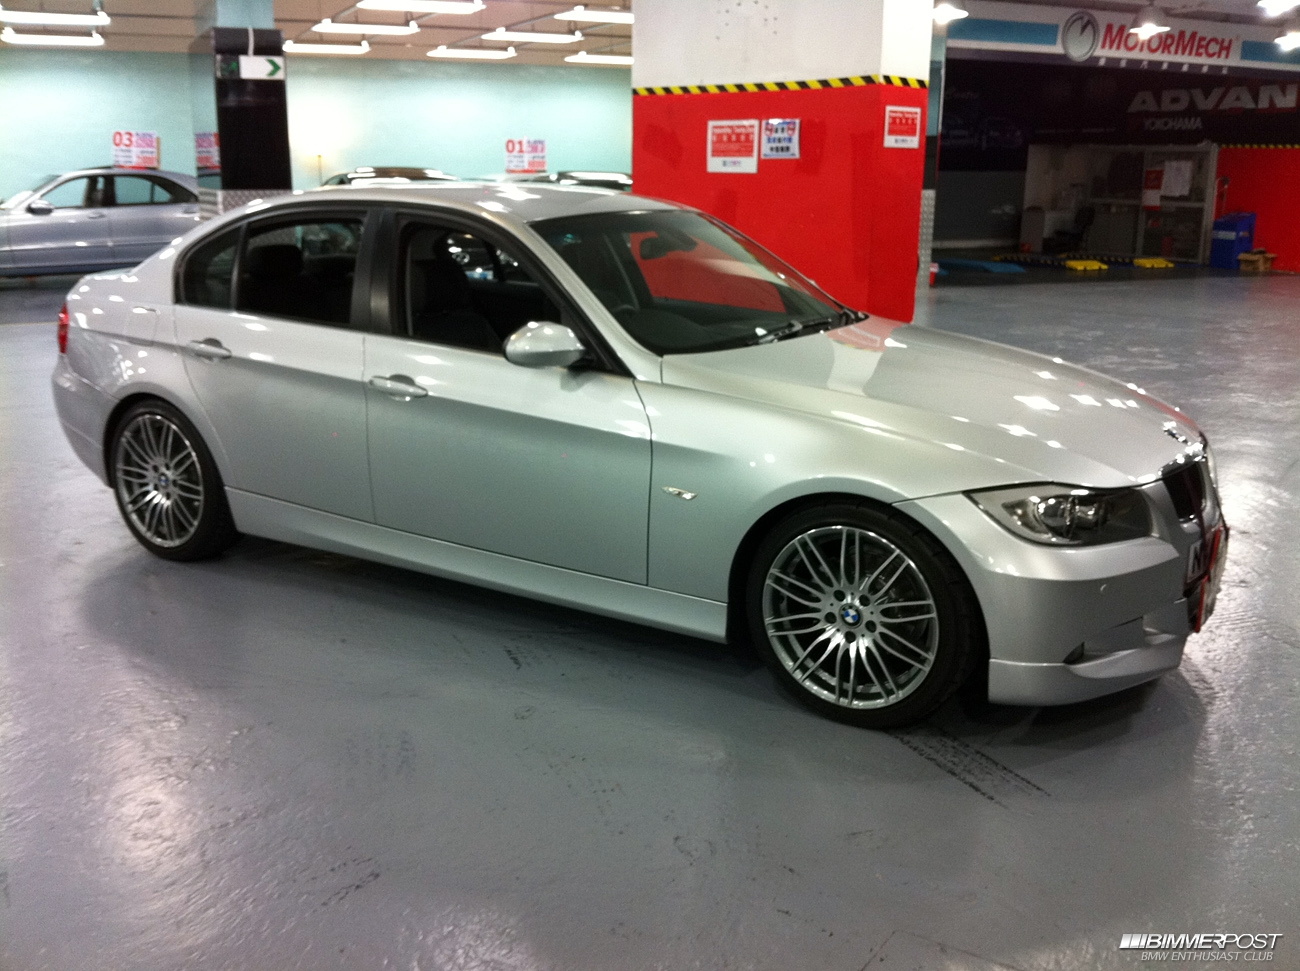 trashken 39 s 2005 320i e90 bimmerpost garage. Black Bedroom Furniture Sets. Home Design Ideas